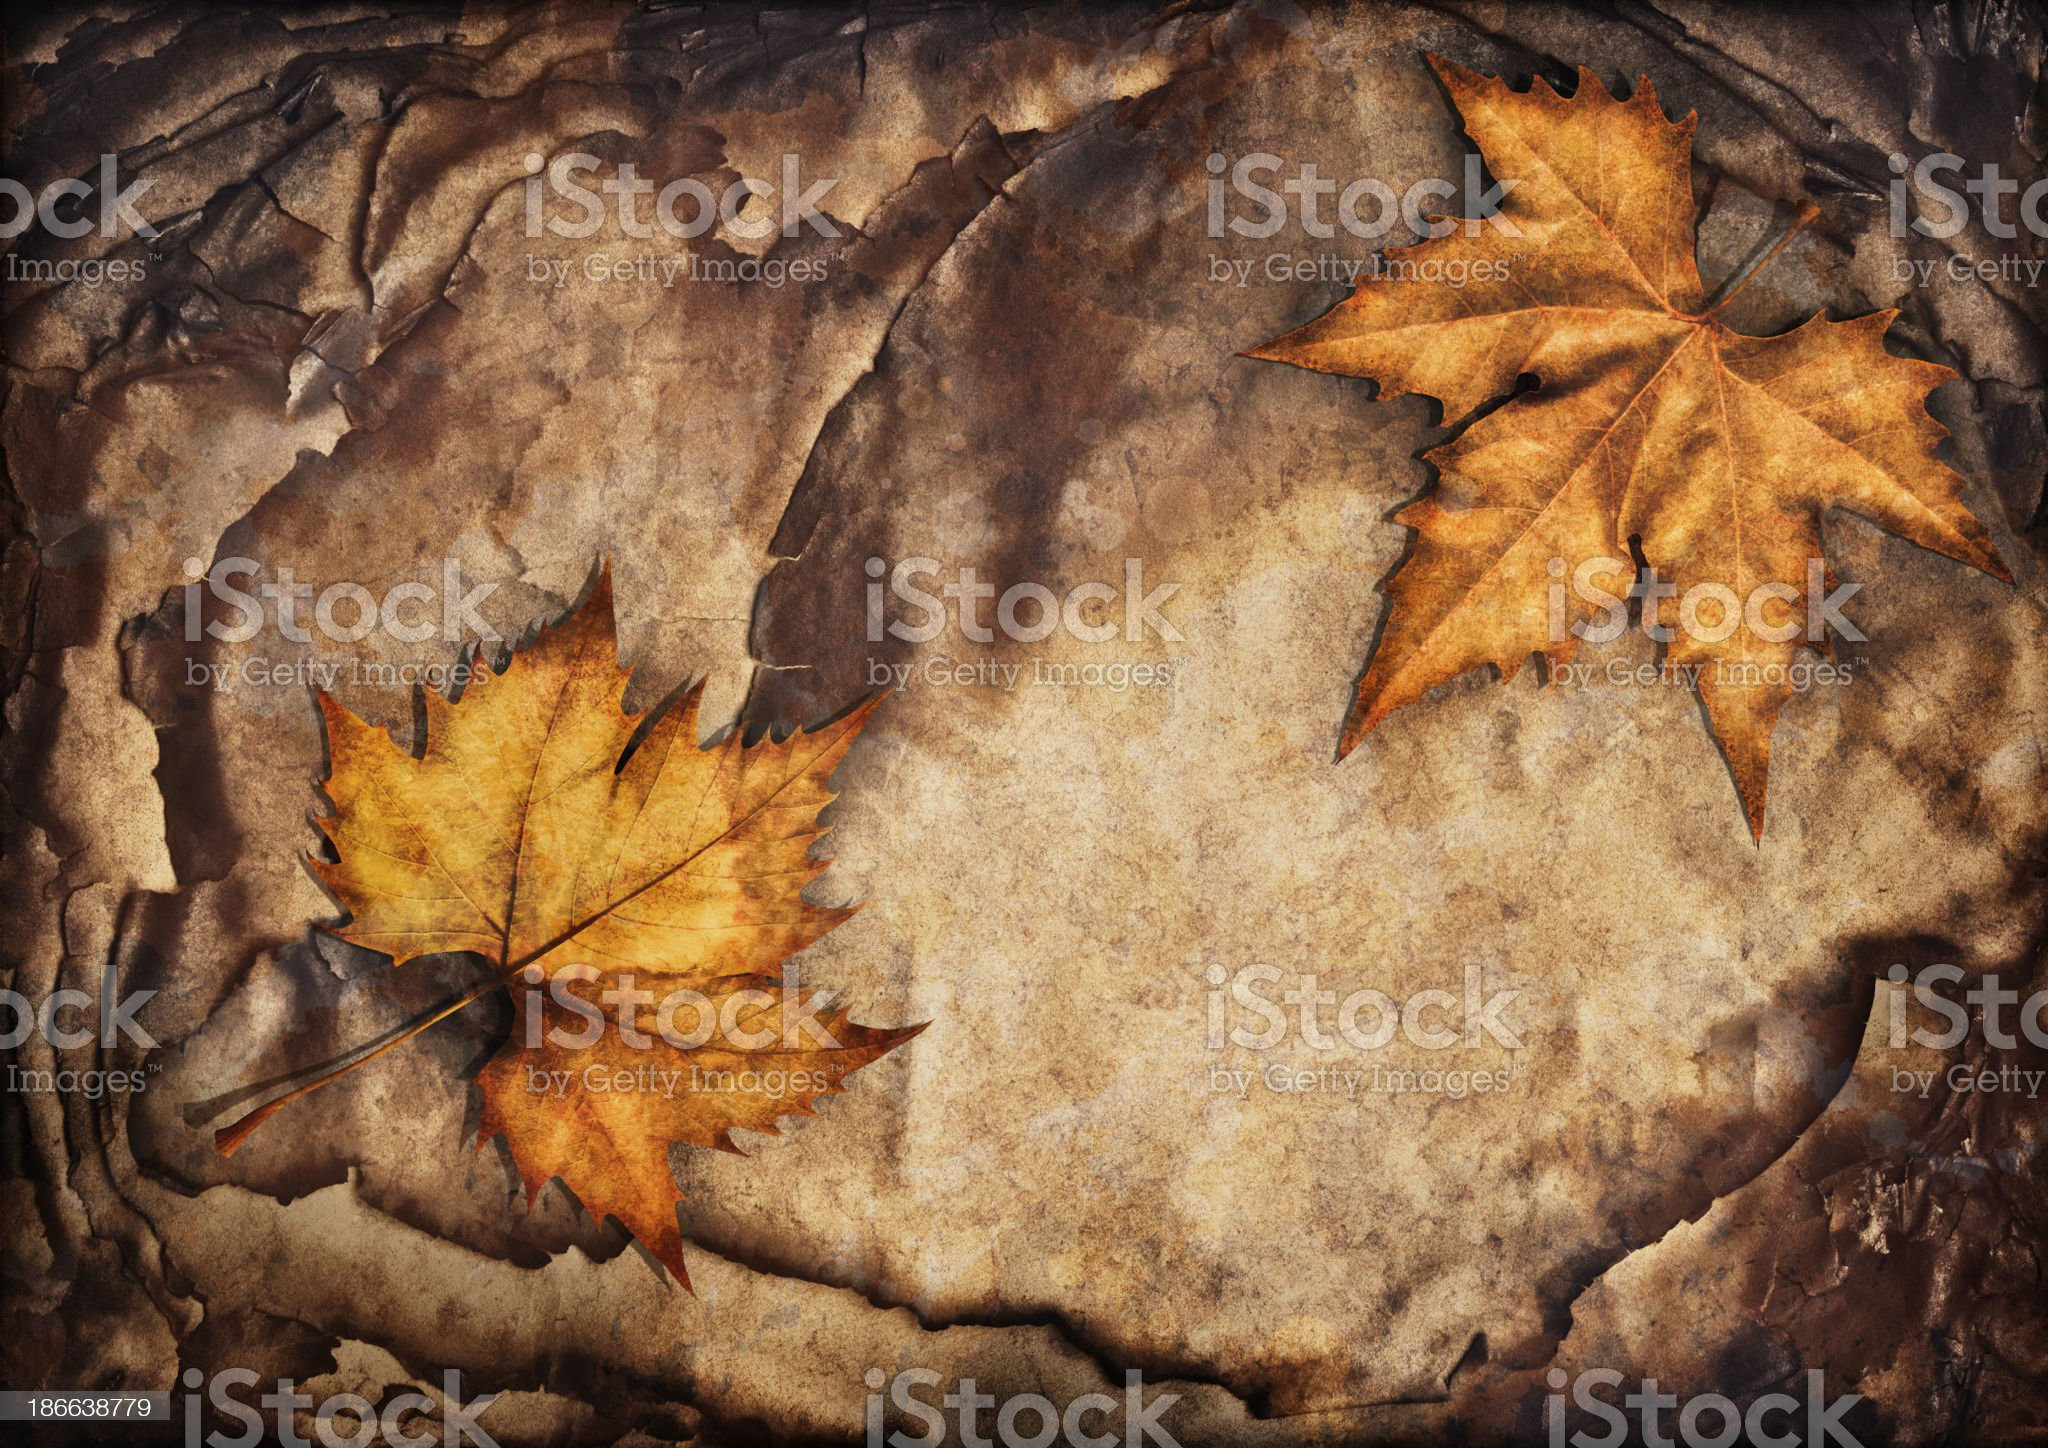 Autumn Maple Leaves Isolated on Pile of Burnt Paper Sheets royalty-free stock photo